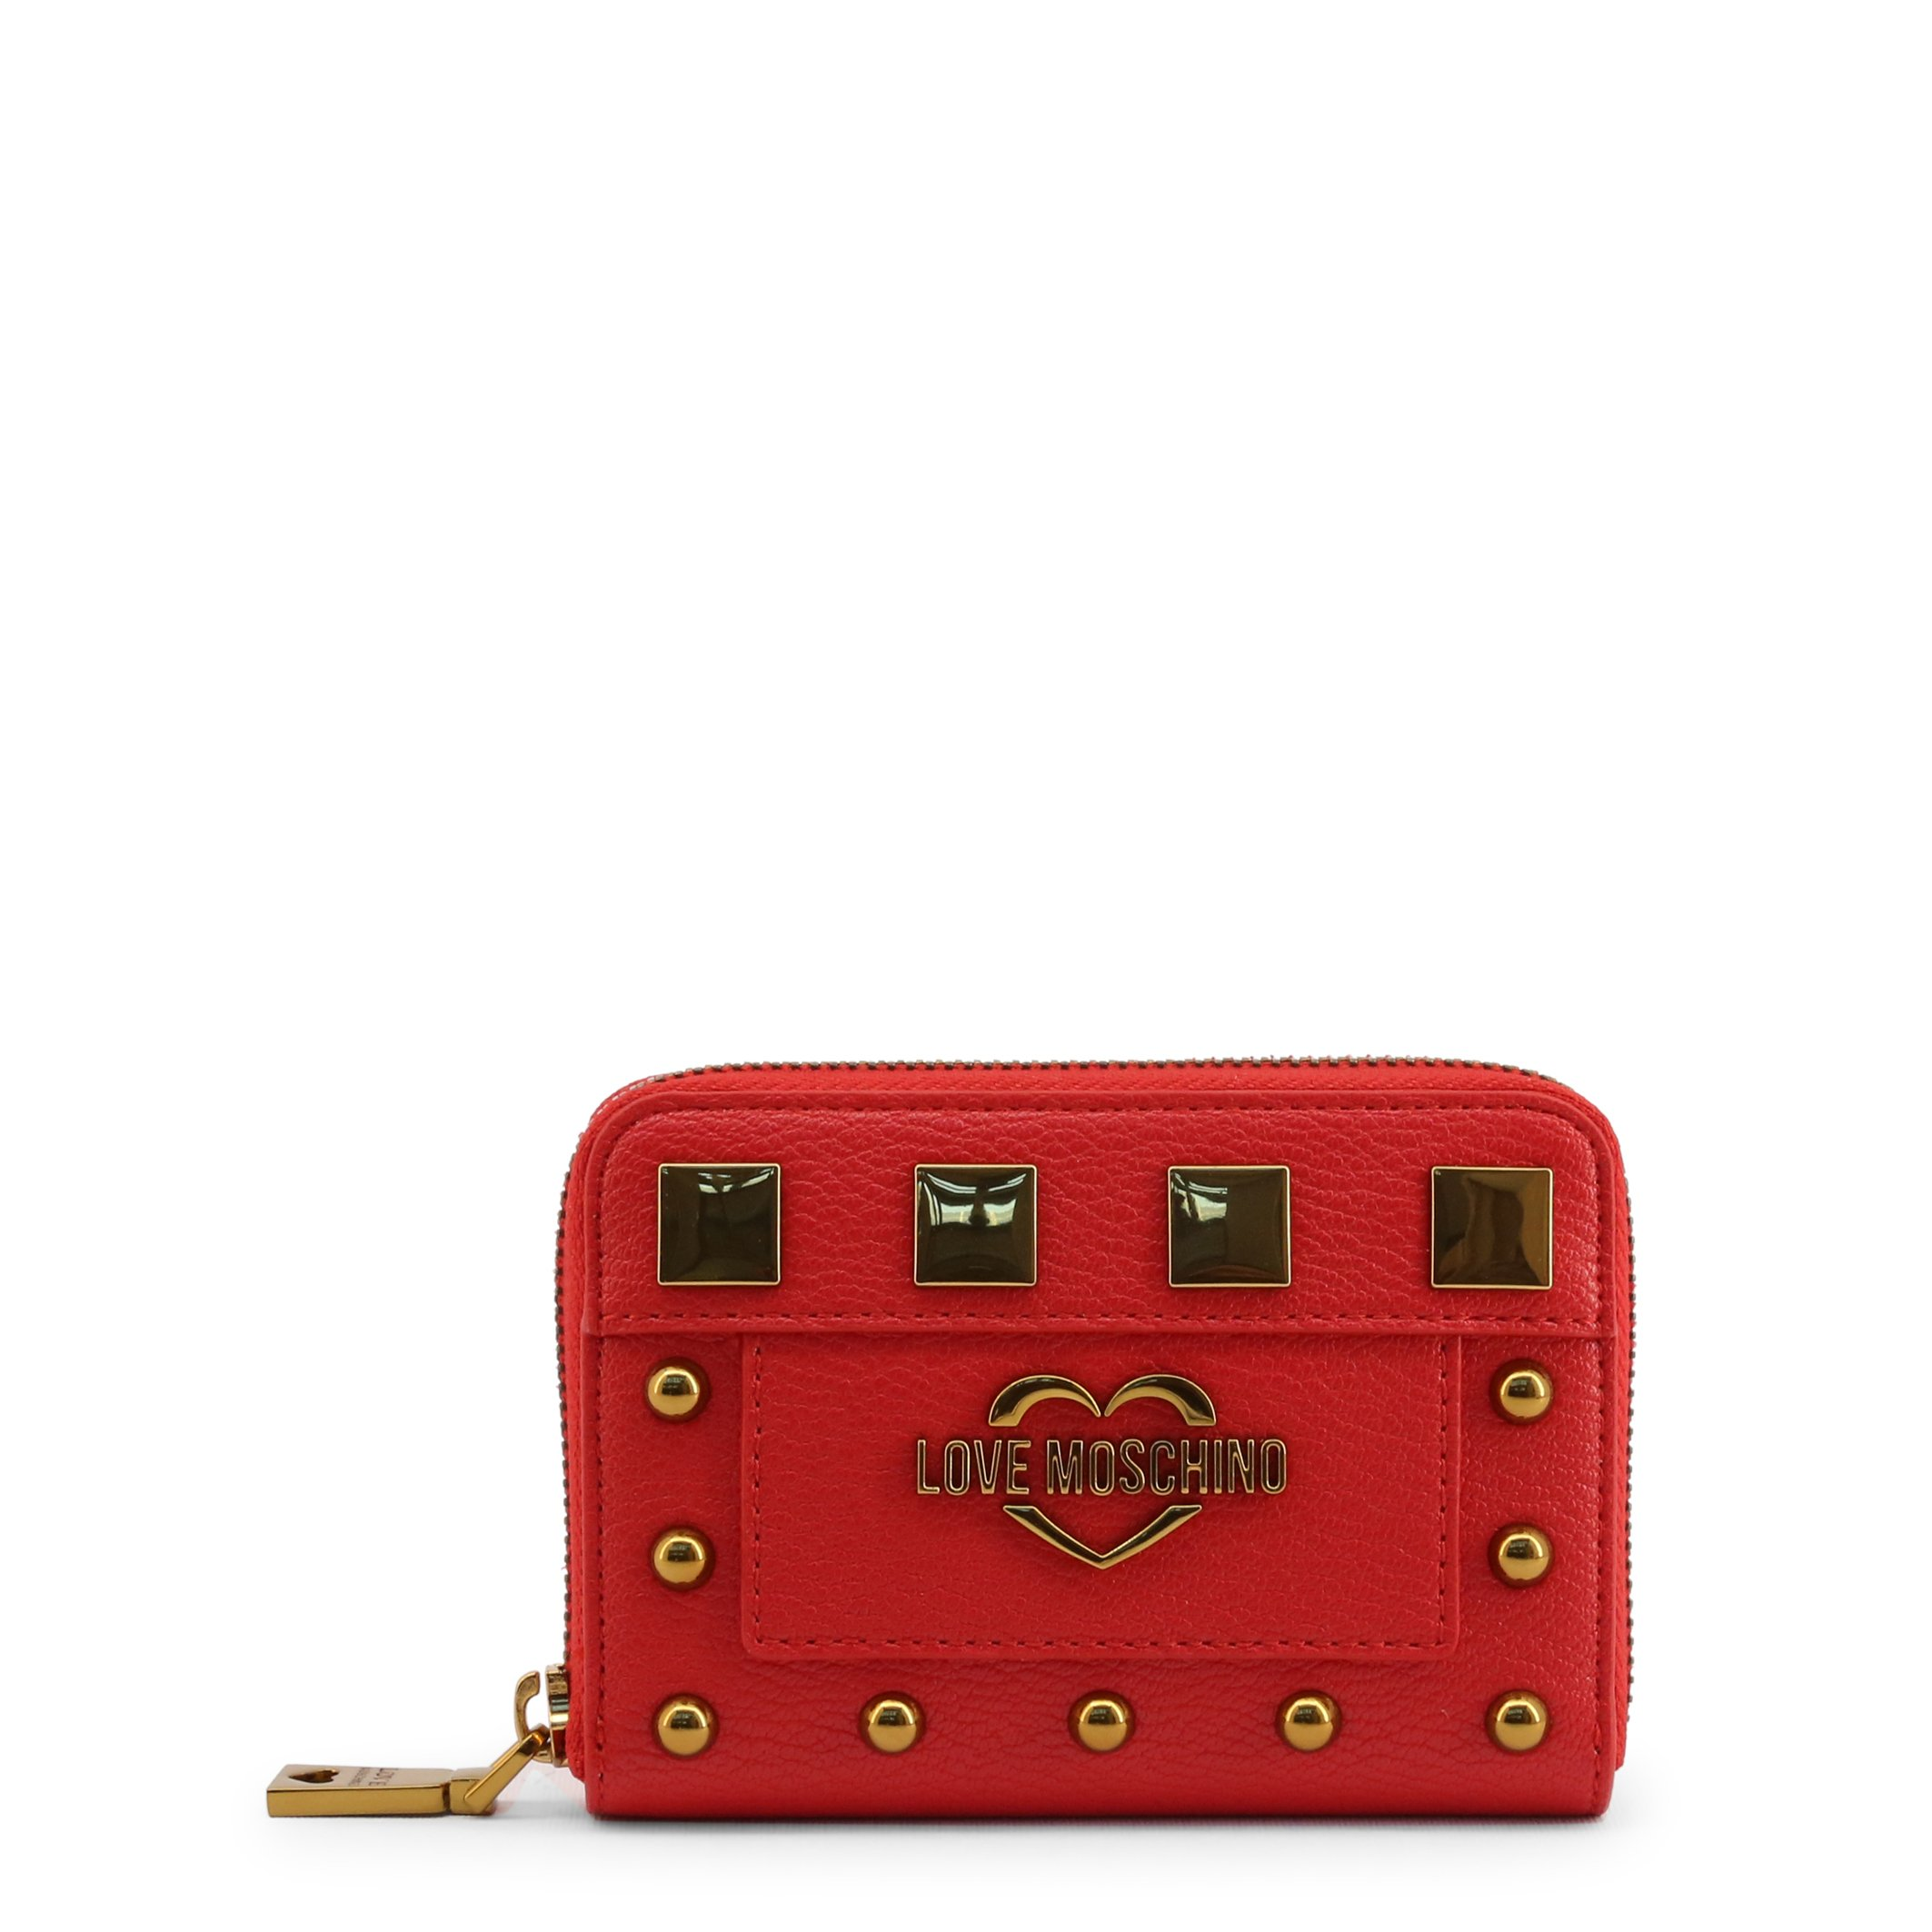 Love Moschino Women's Wallet Various Colours JC5651PP0BKO - red NOSIZE